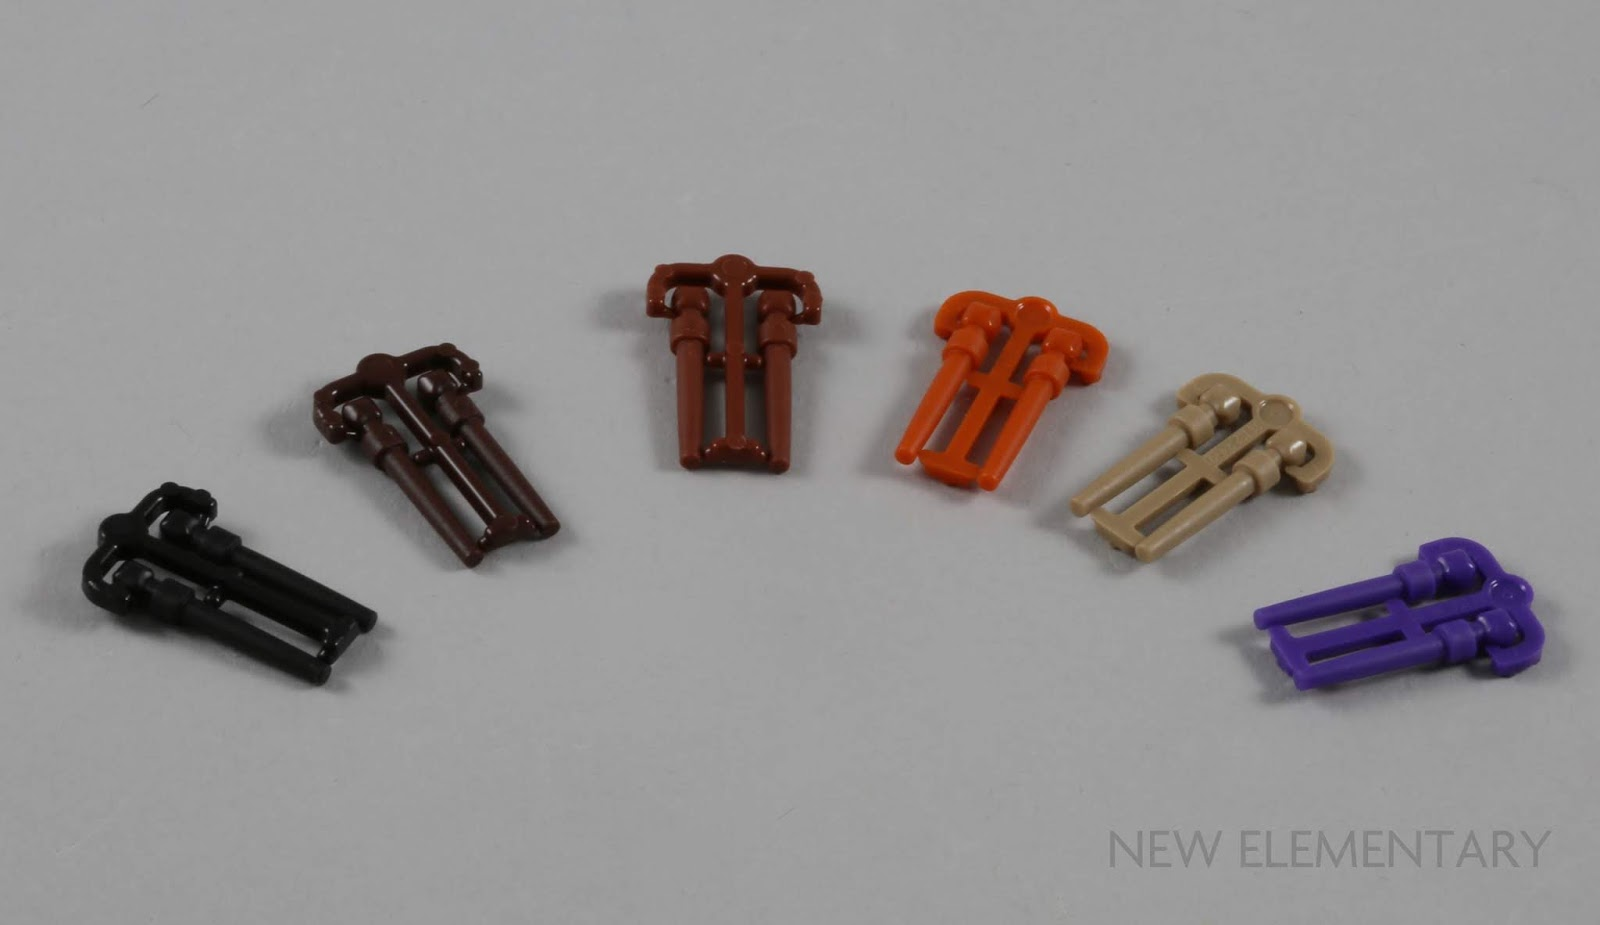 Lego Harry Potter A Wanderful New Element New Elementary Lego Parts Sets And Techniques